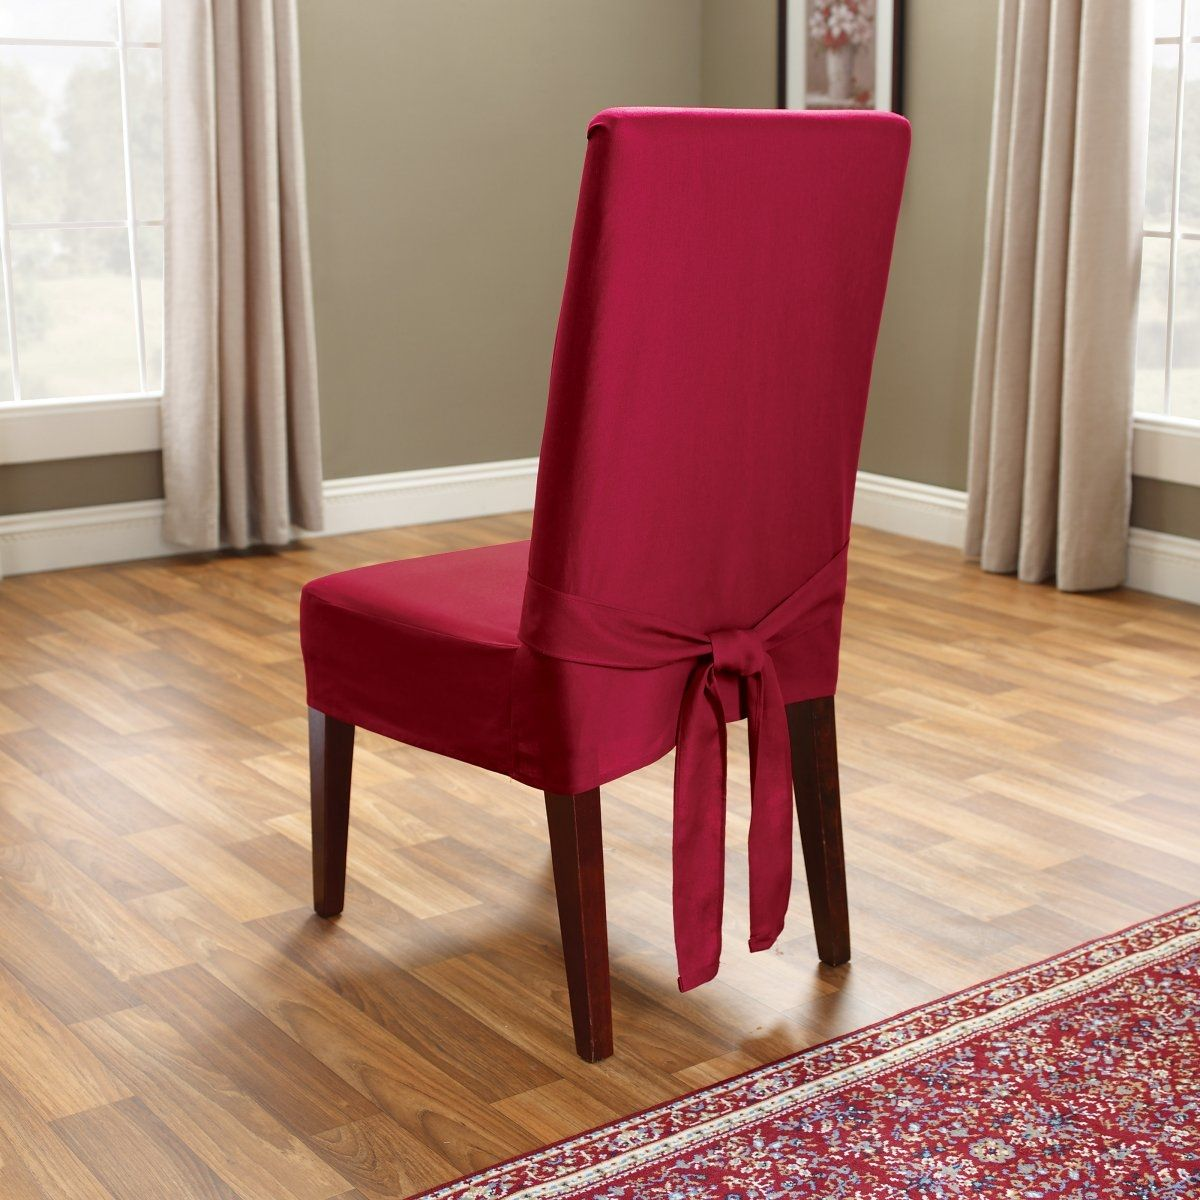 Room Dining Chair Covers Seat Only